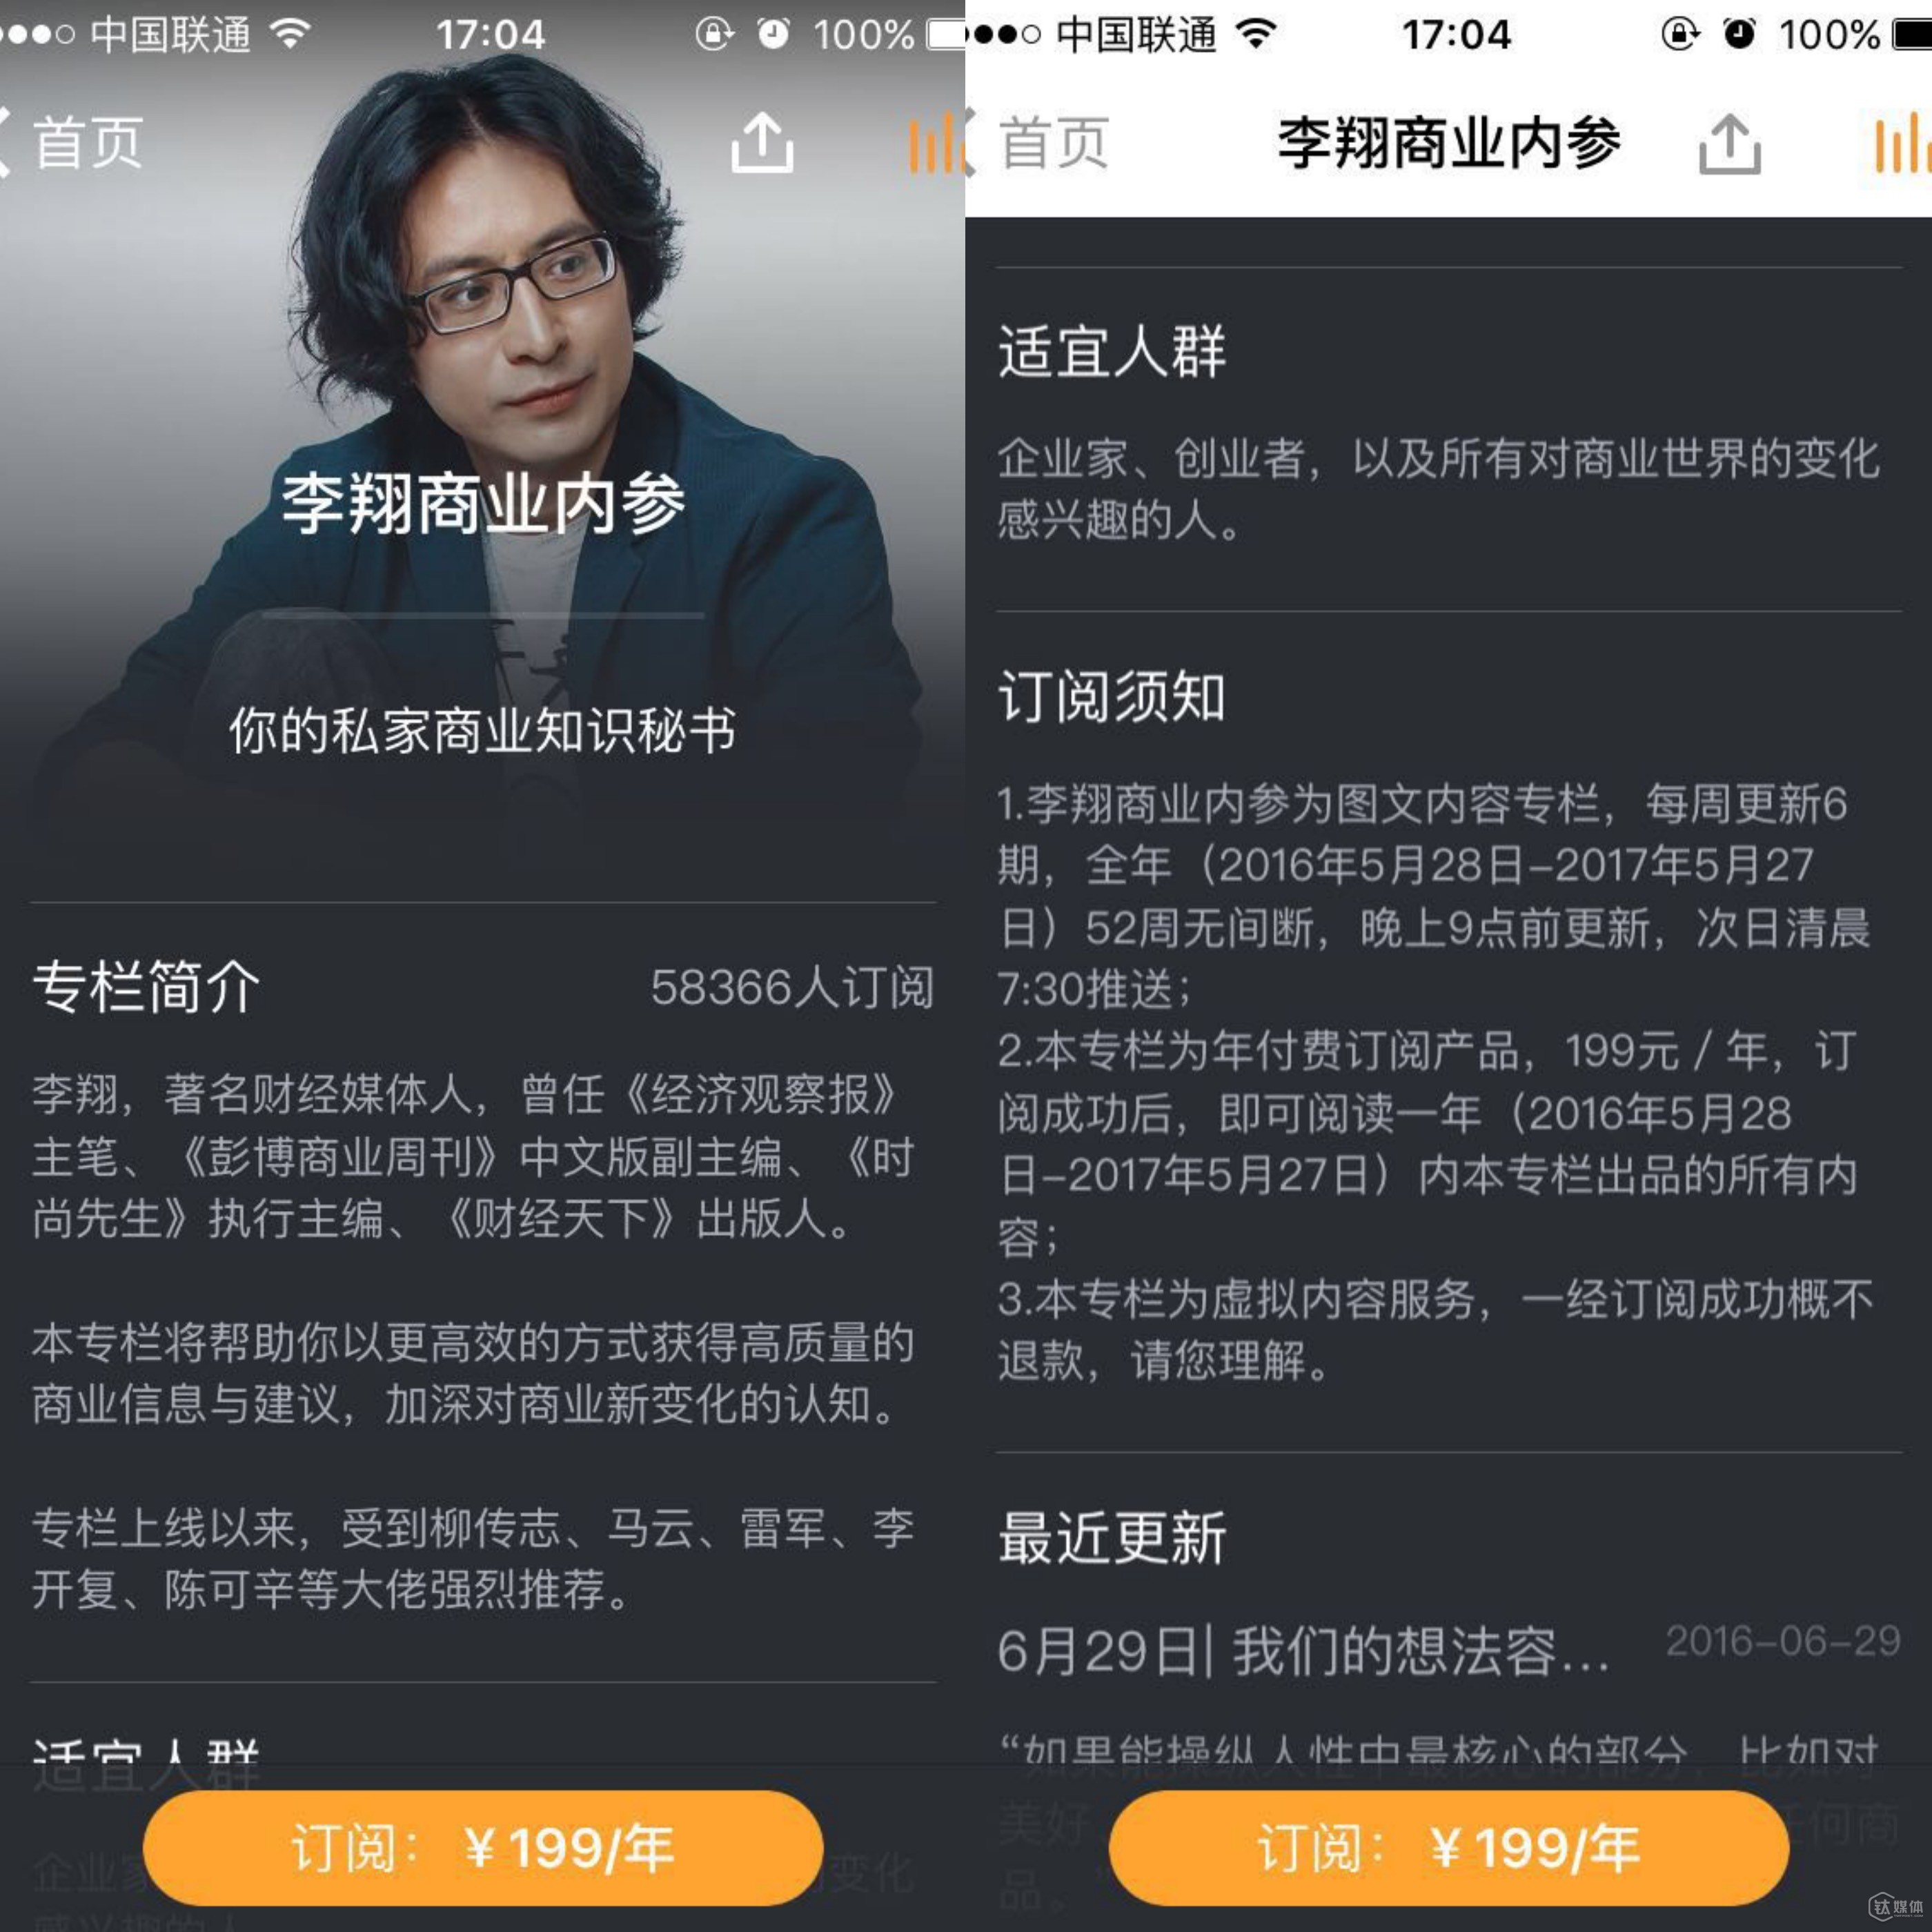 The  subscription page of Li Xiang